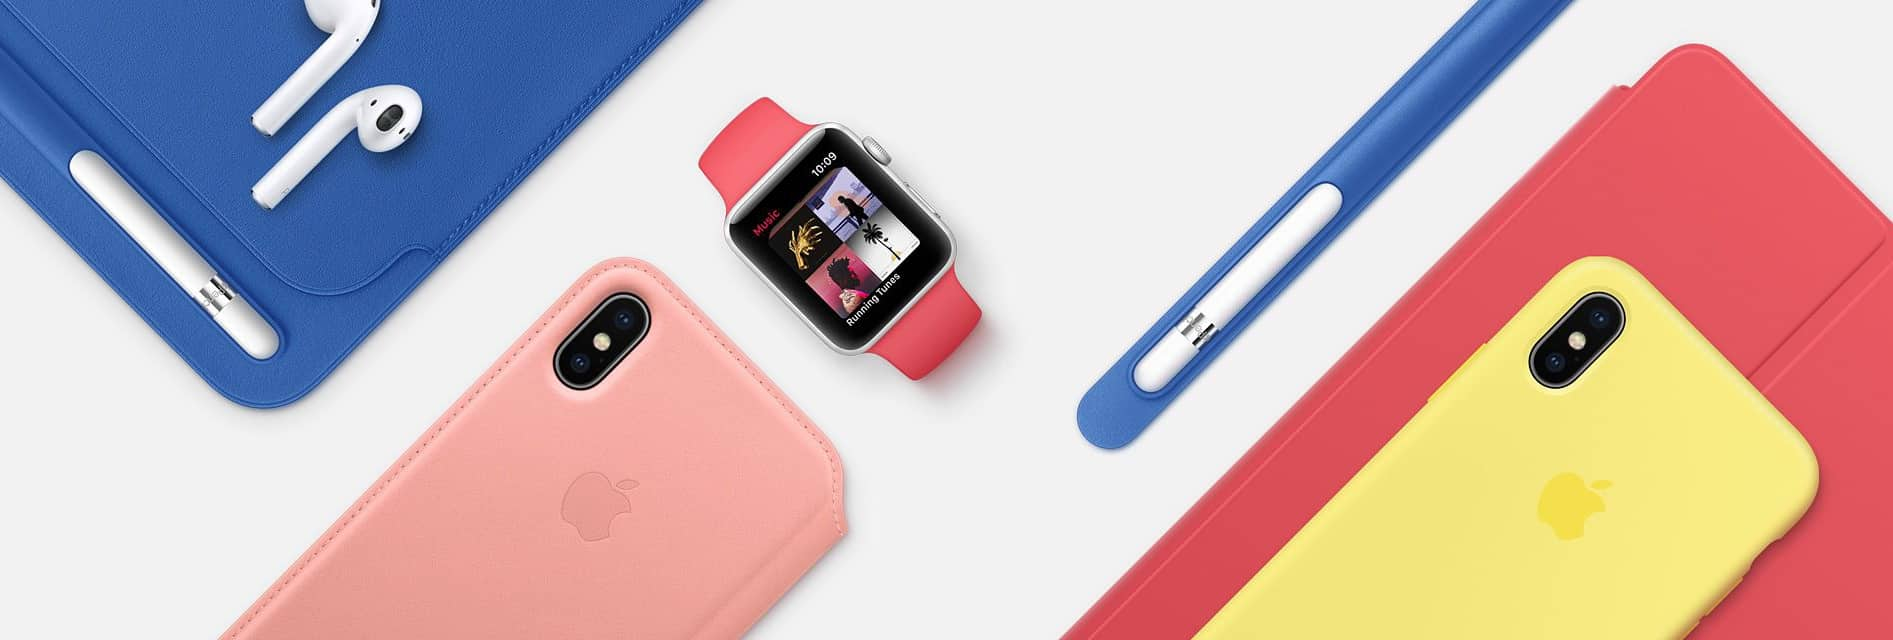 timeless design 3bf1b 66e66 New iPhone cases and Apple Watch bands burst with spring colors ...